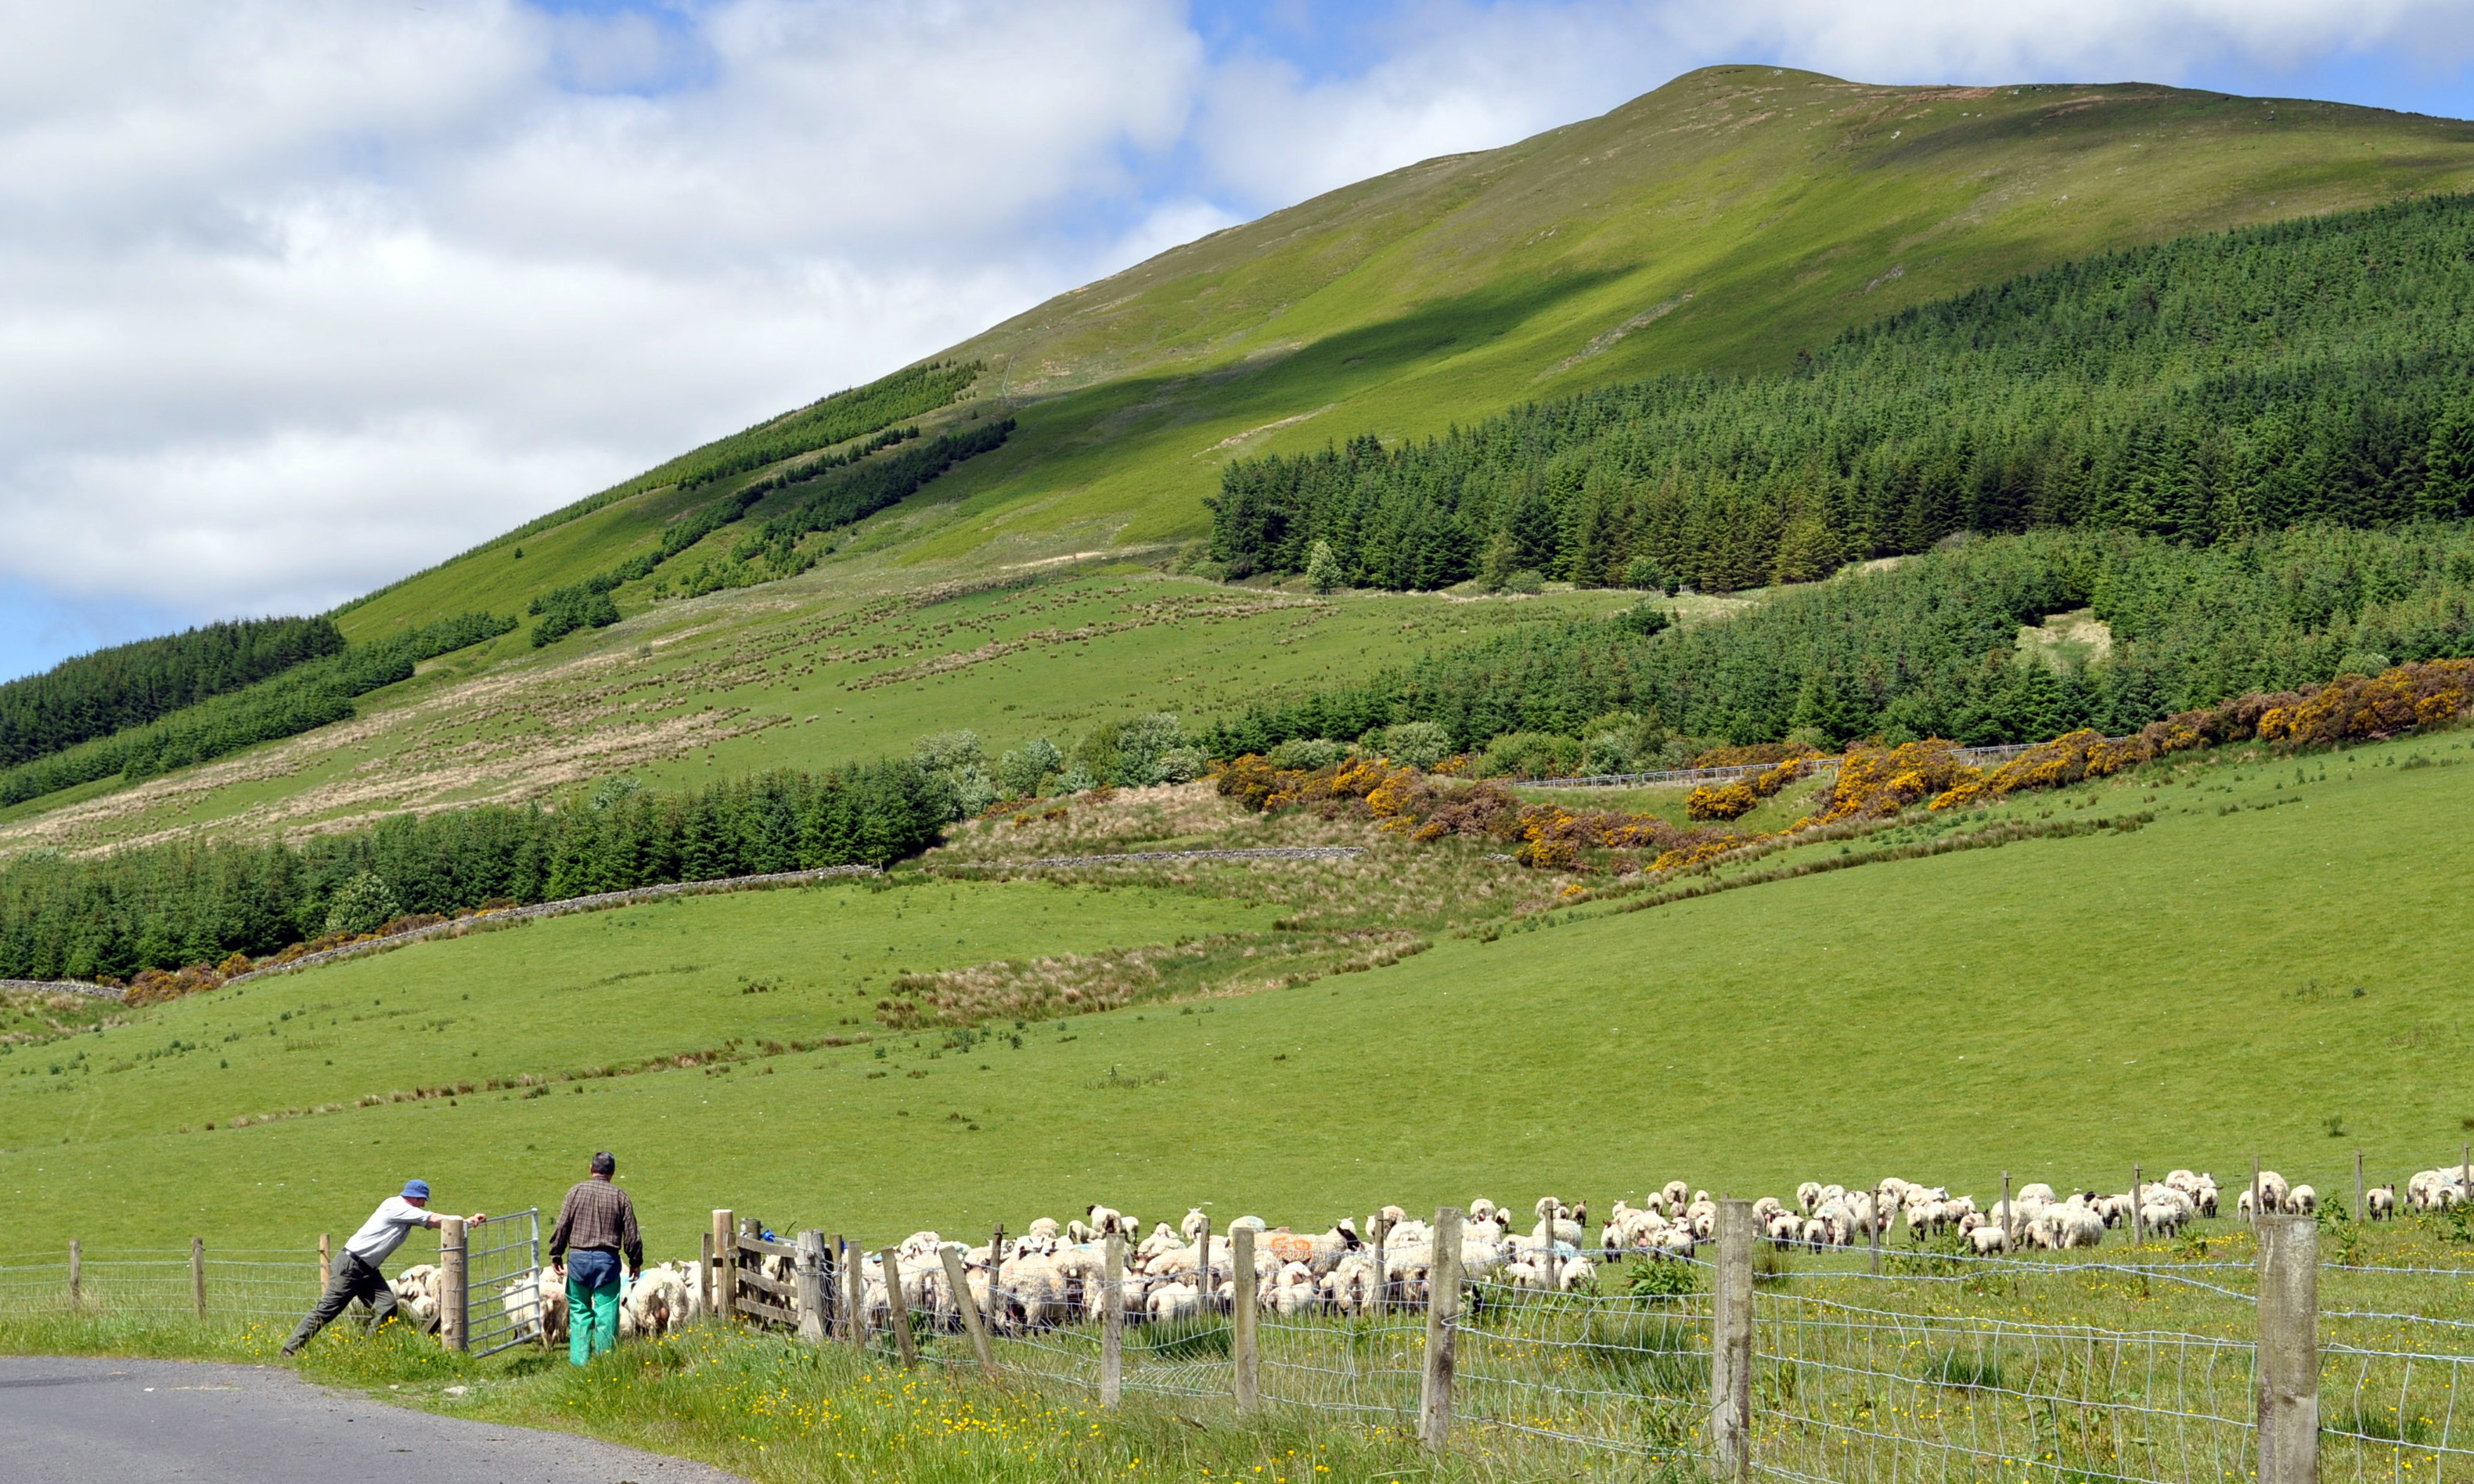 Glorious Glen Fruin where sheep and cattle may safely graze – or maybe not